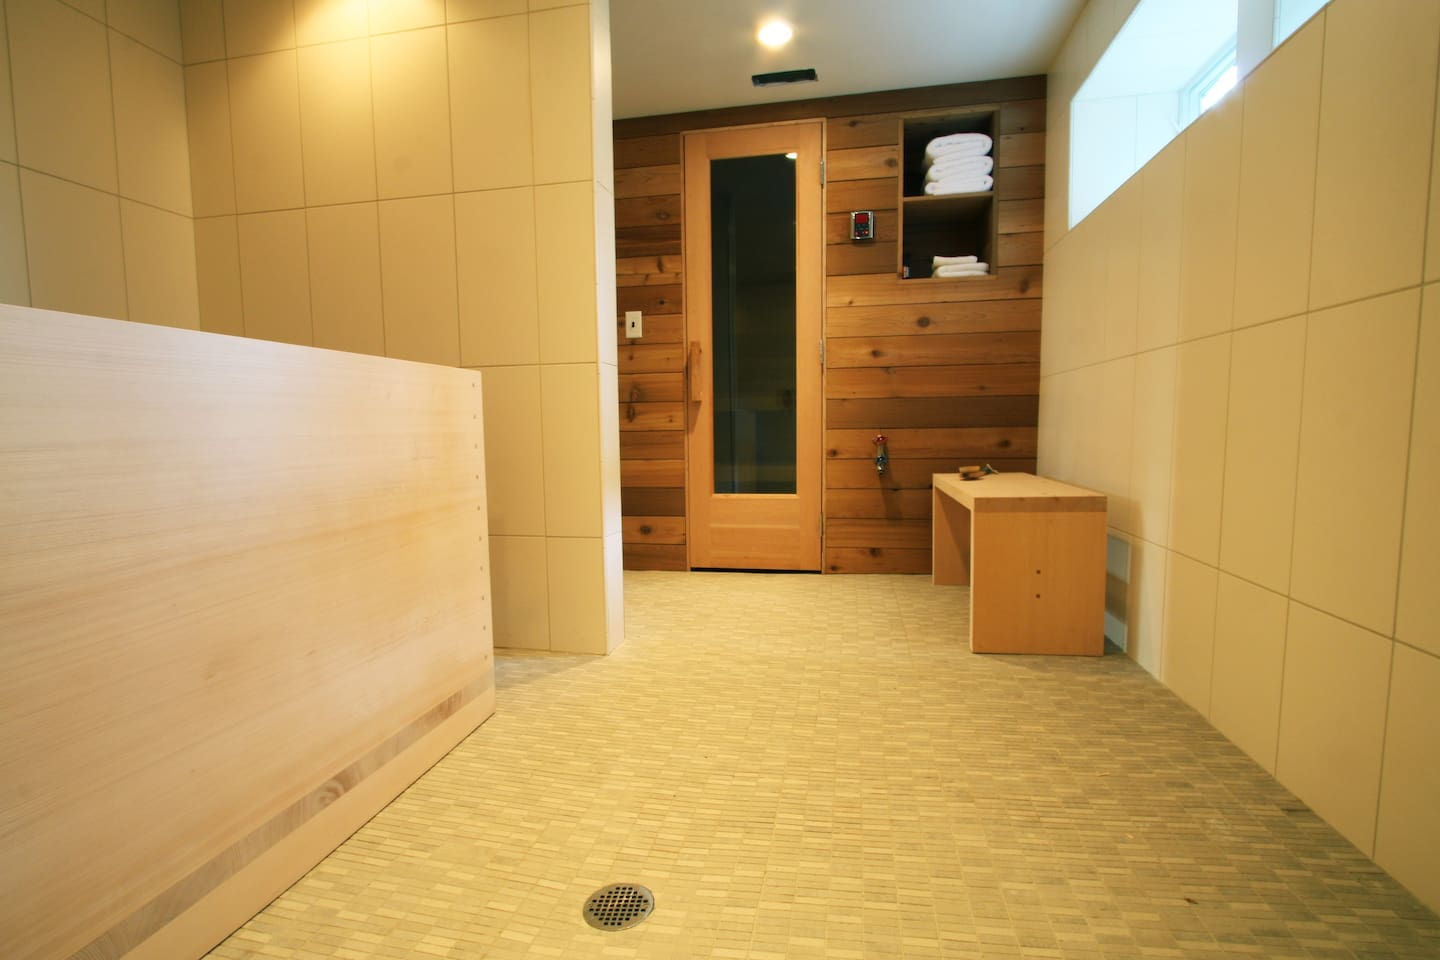 inside the spa looking at the Ofuro (japanese soaking tub) and the dry sauna.